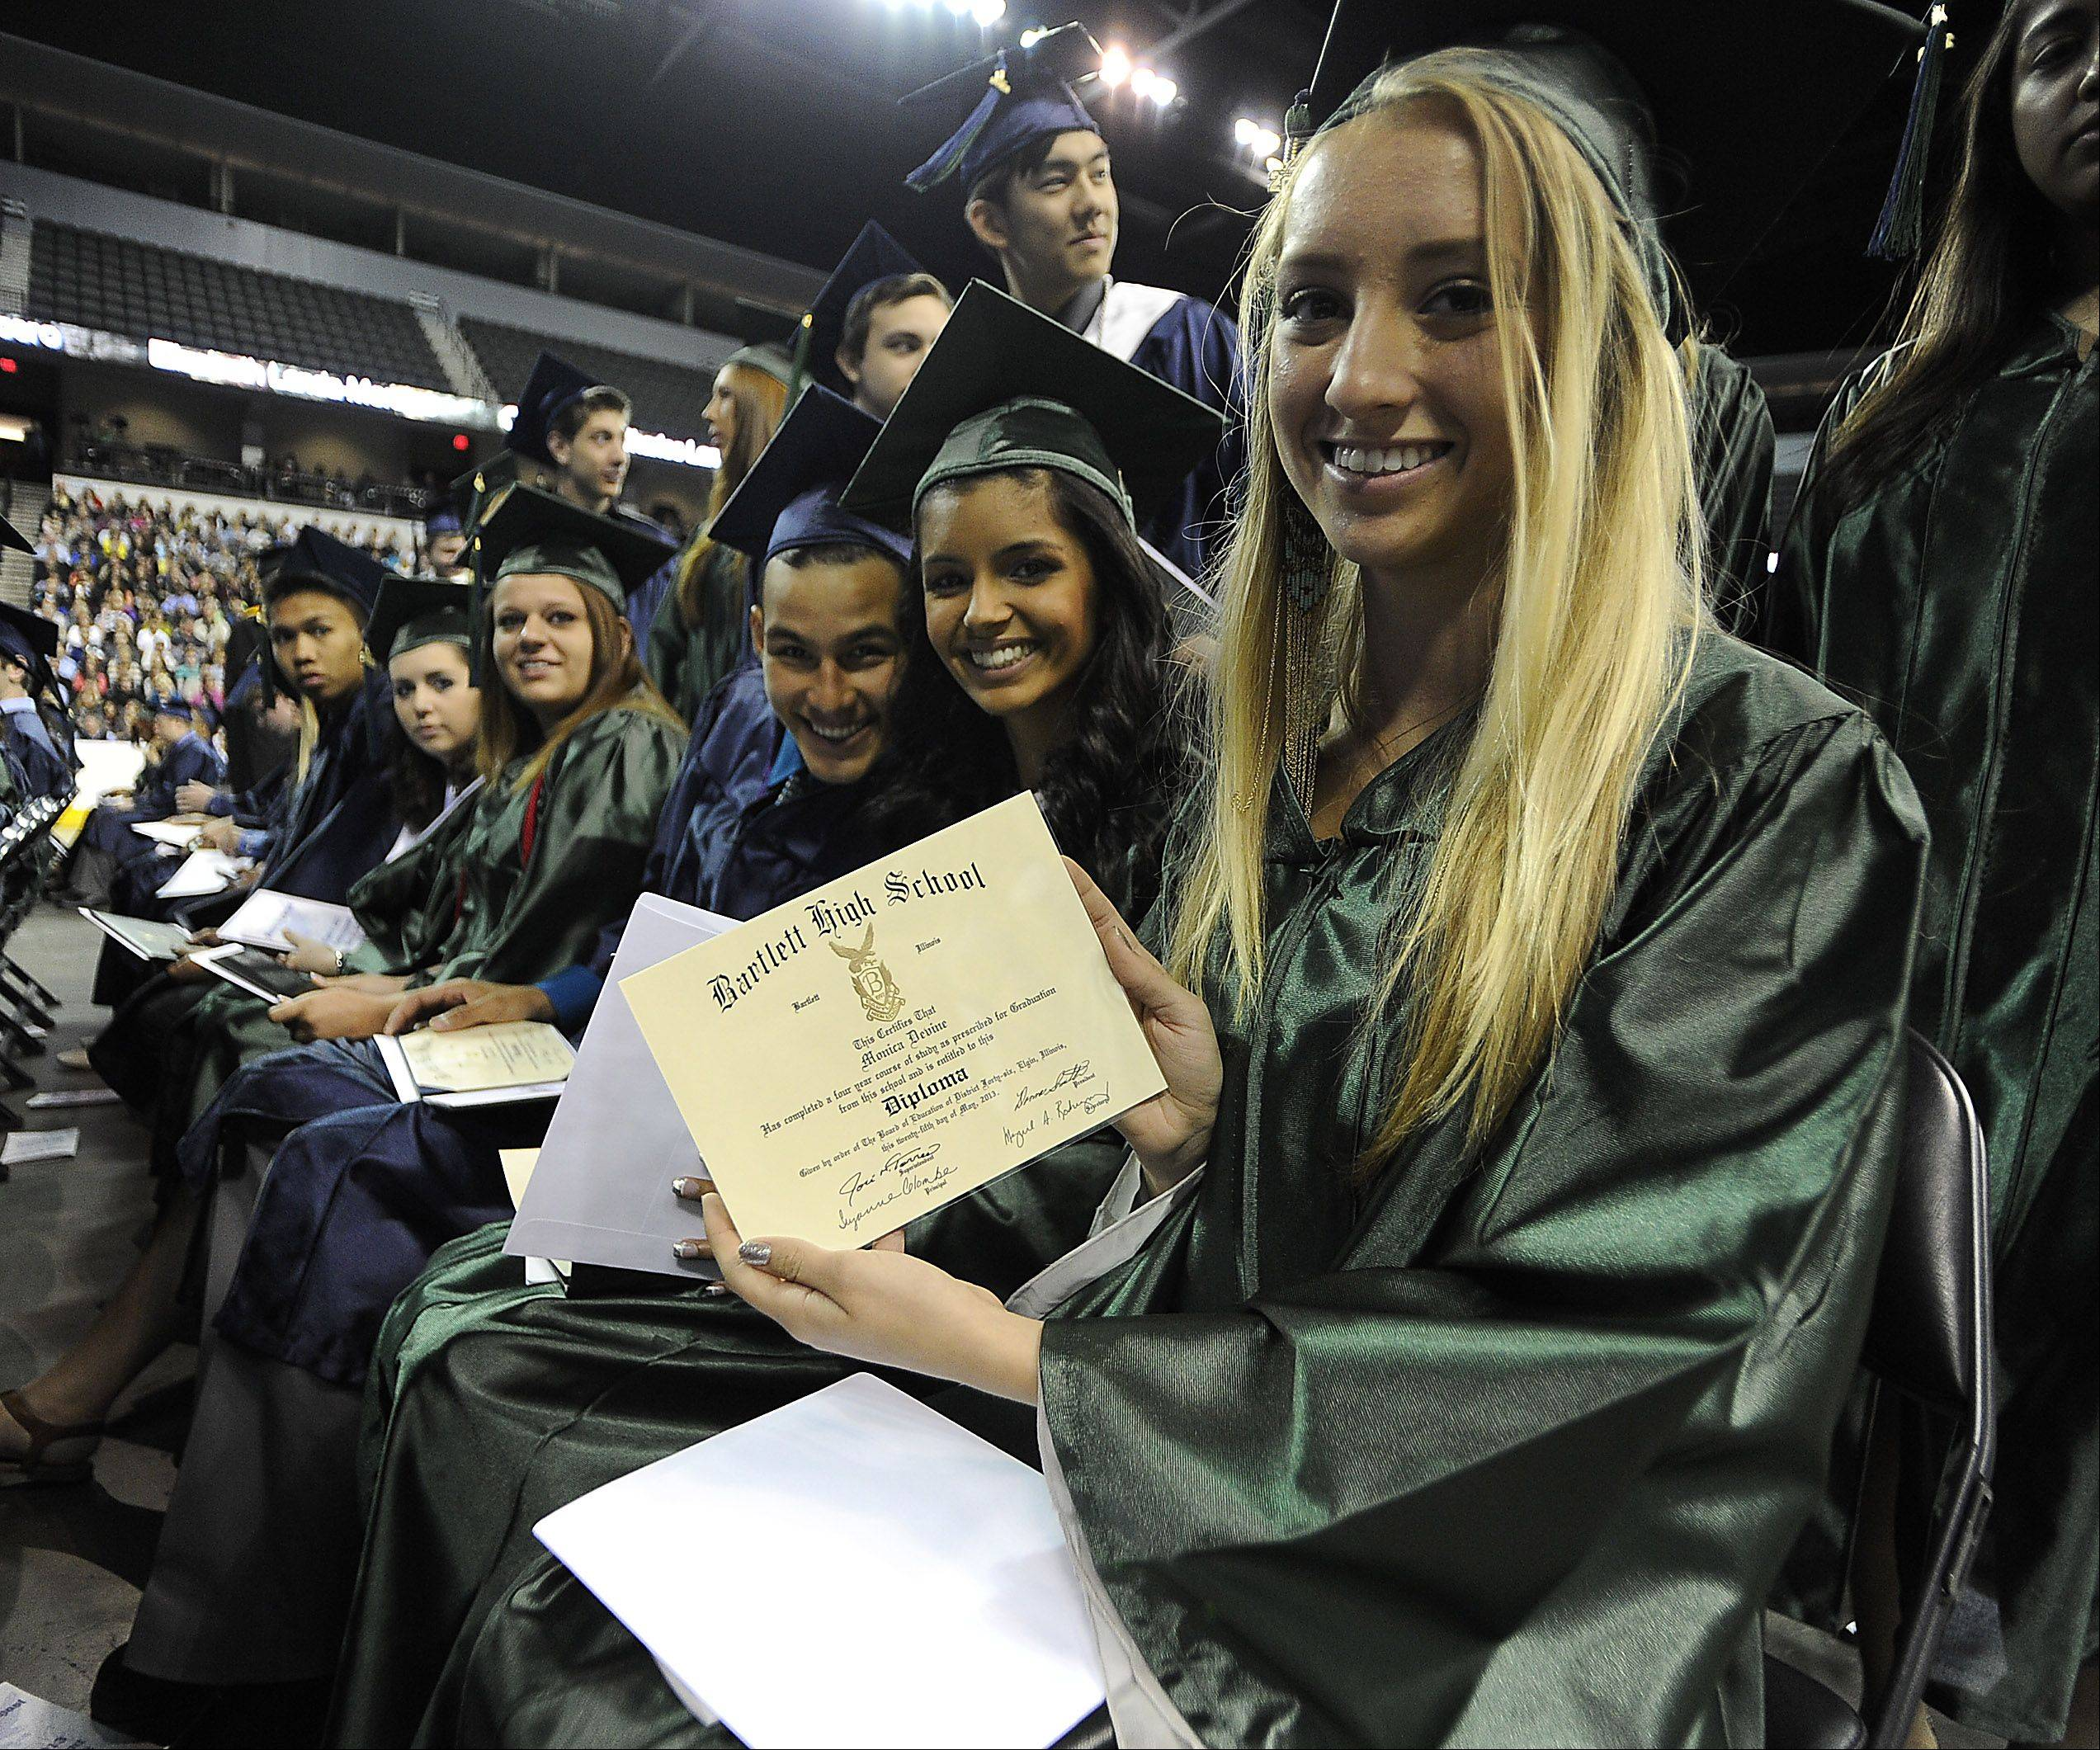 Graduate Monica Devine,17,of Hanover Park shows off her diploma as she takes part in the Bartlett High School Commencement at the Sears Centre in Hoffman Estates on Saturday.